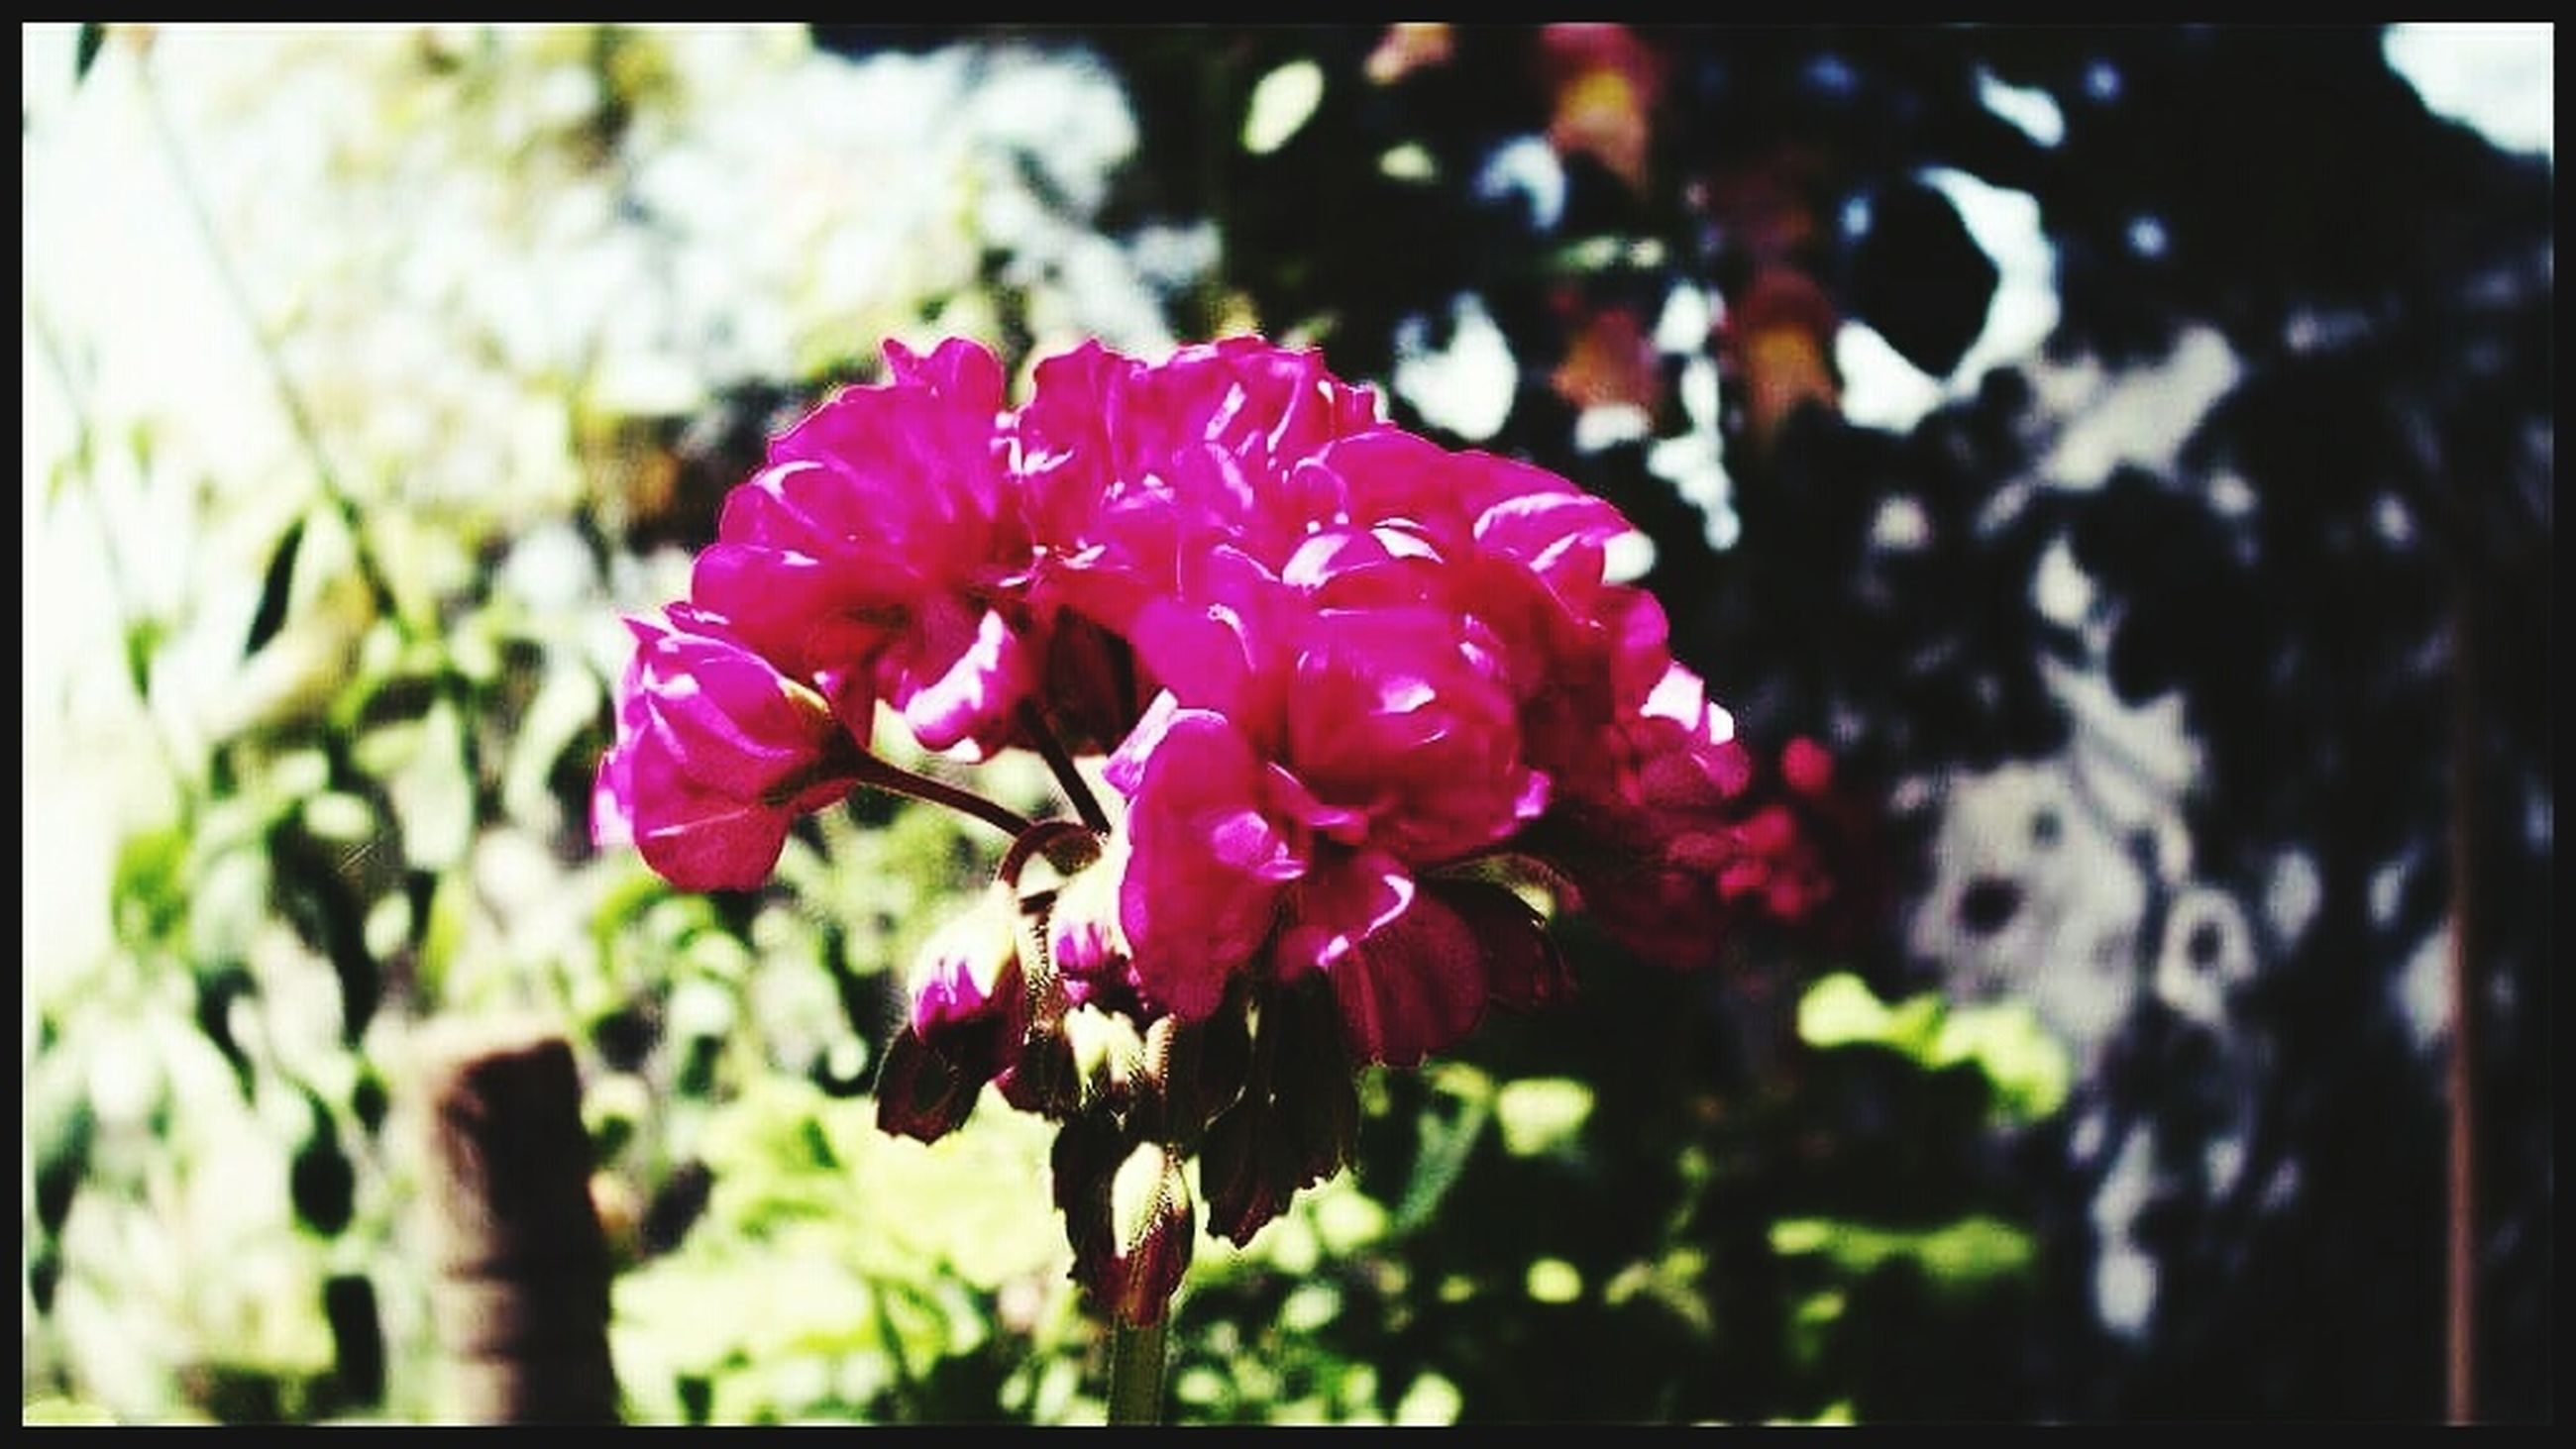 flower, petal, transfer print, freshness, fragility, growth, pink color, focus on foreground, flower head, beauty in nature, close-up, blooming, auto post production filter, nature, plant, in bloom, park - man made space, selective focus, day, blossom